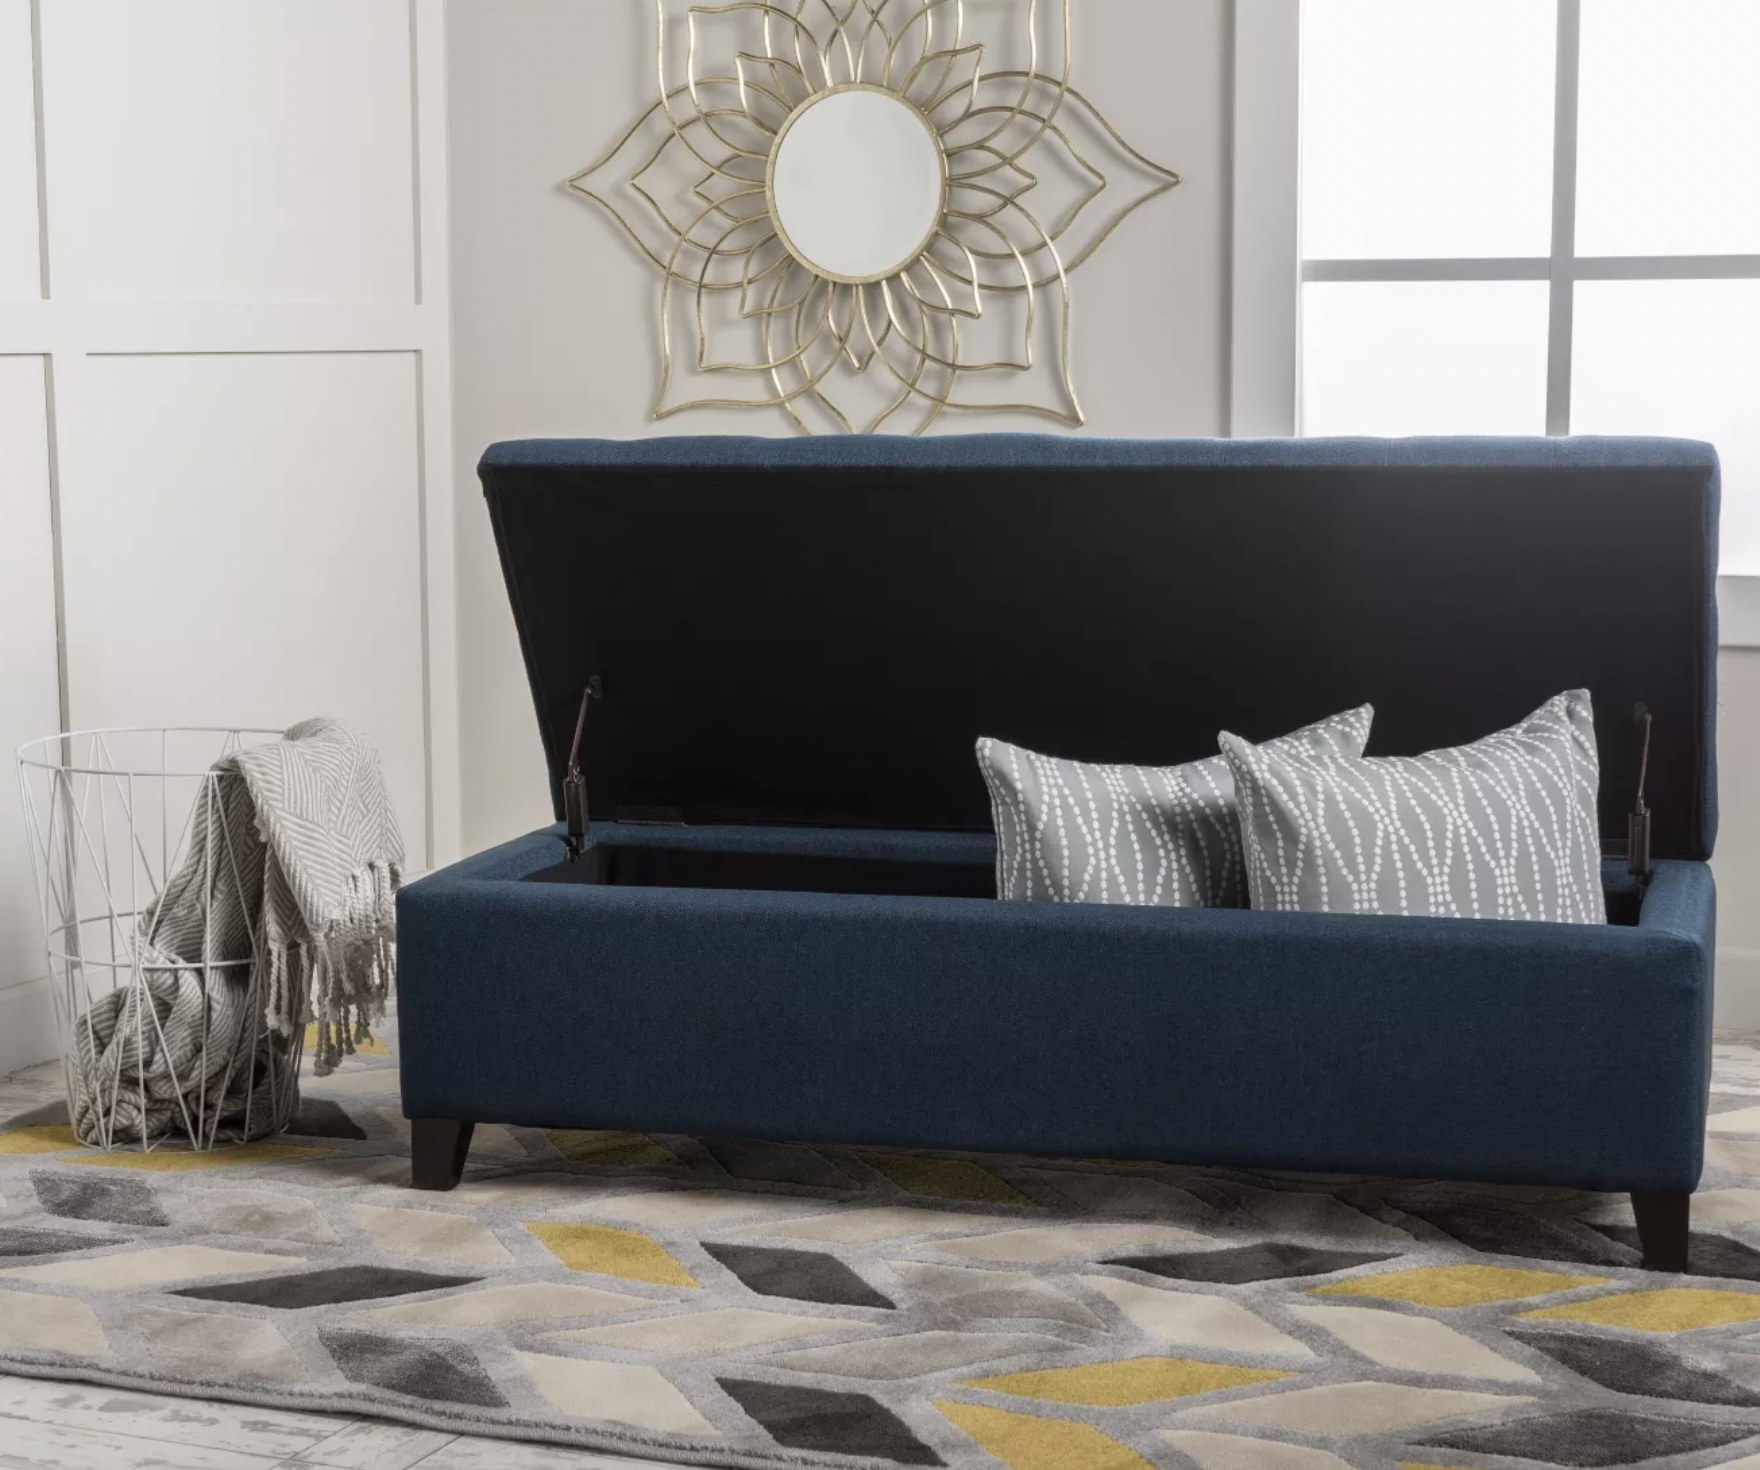 a navy blue ottoman with its top flipped open, revealing storage inside